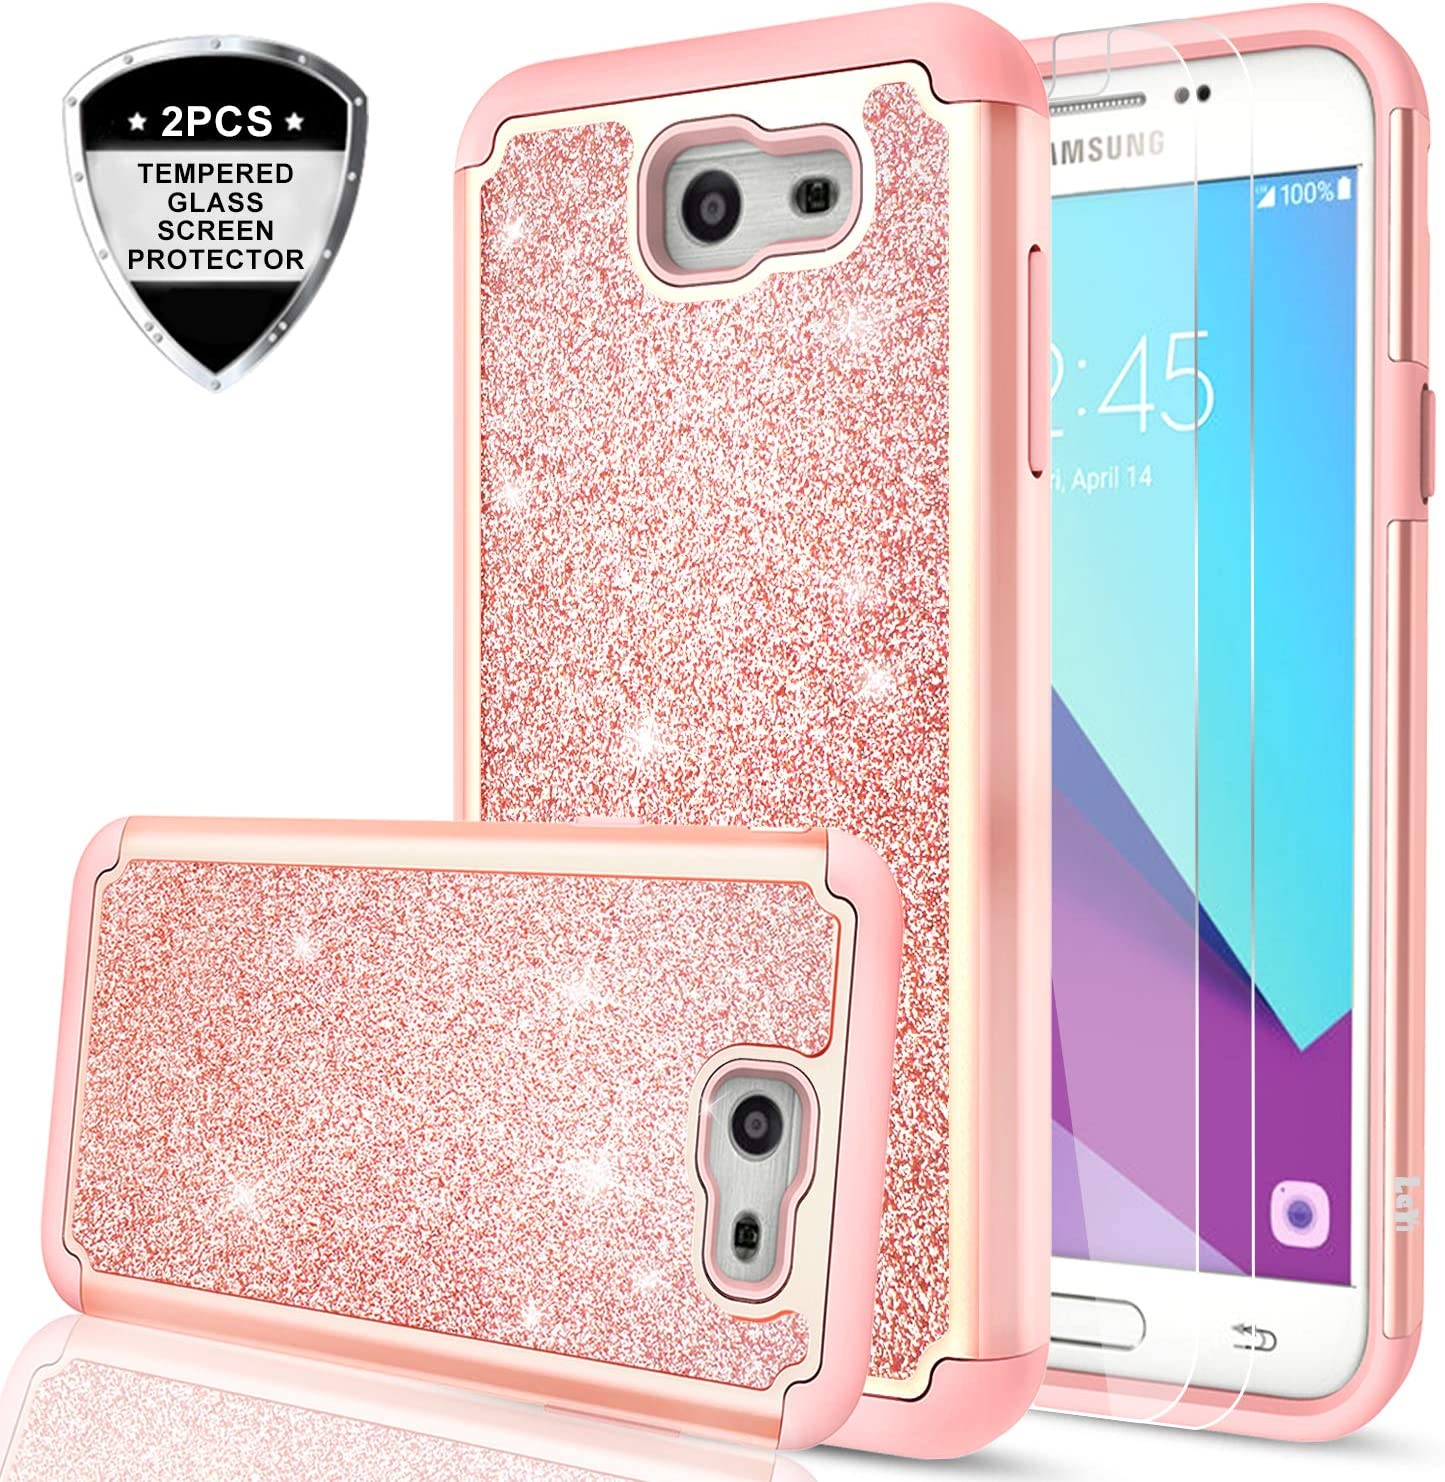 Galaxy J7 Prime Case,(Not fit J7 2018) J7 Sky Pro/J7 V/Halo/J7 Perx Glitter Case with Tempered Glass Screen Protector [2 Pack],LeYi Bling Hybrid Heavy Duty Phone Case for Samsung J7 2017 TP Rose Gold